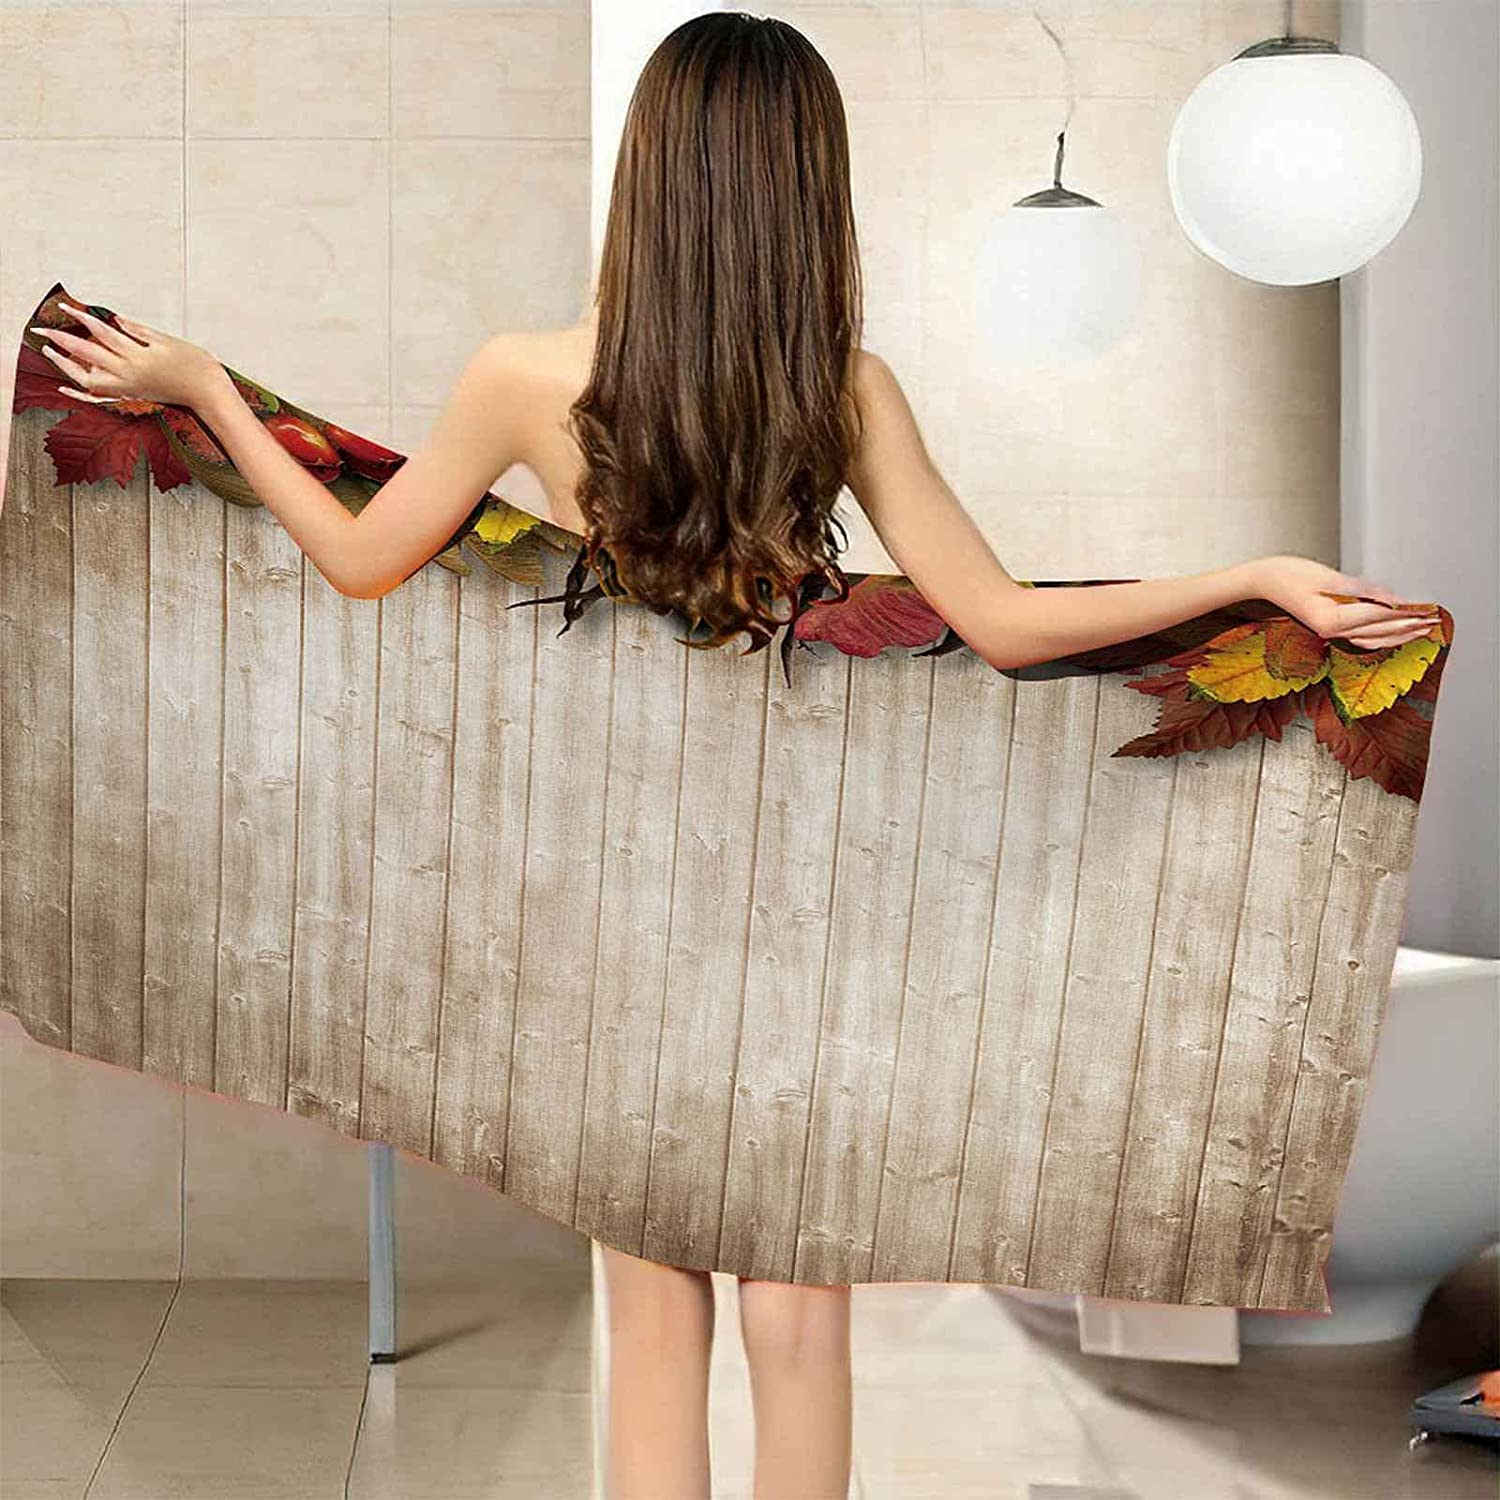 QFMMQI Raleigh Mall Beach Towels Oversized Adults Free Popular brand in the world Quick Sand Dry T